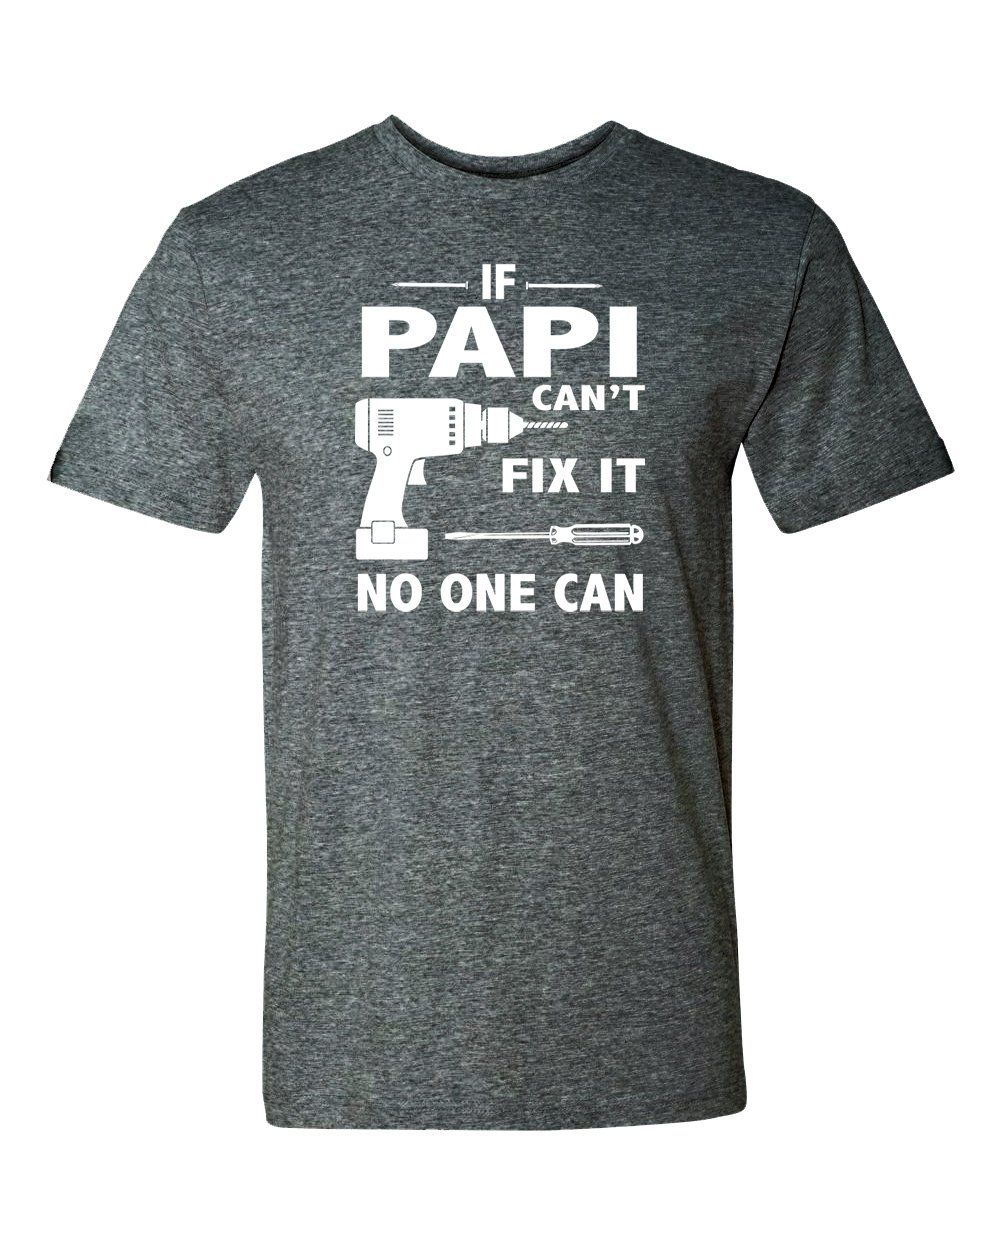 d9904cd6 If Papi Can't Fix It No One Can - Unisex Shirt - Papi Gift - Papi Shirt by  FamilyTeeStore on Etsy